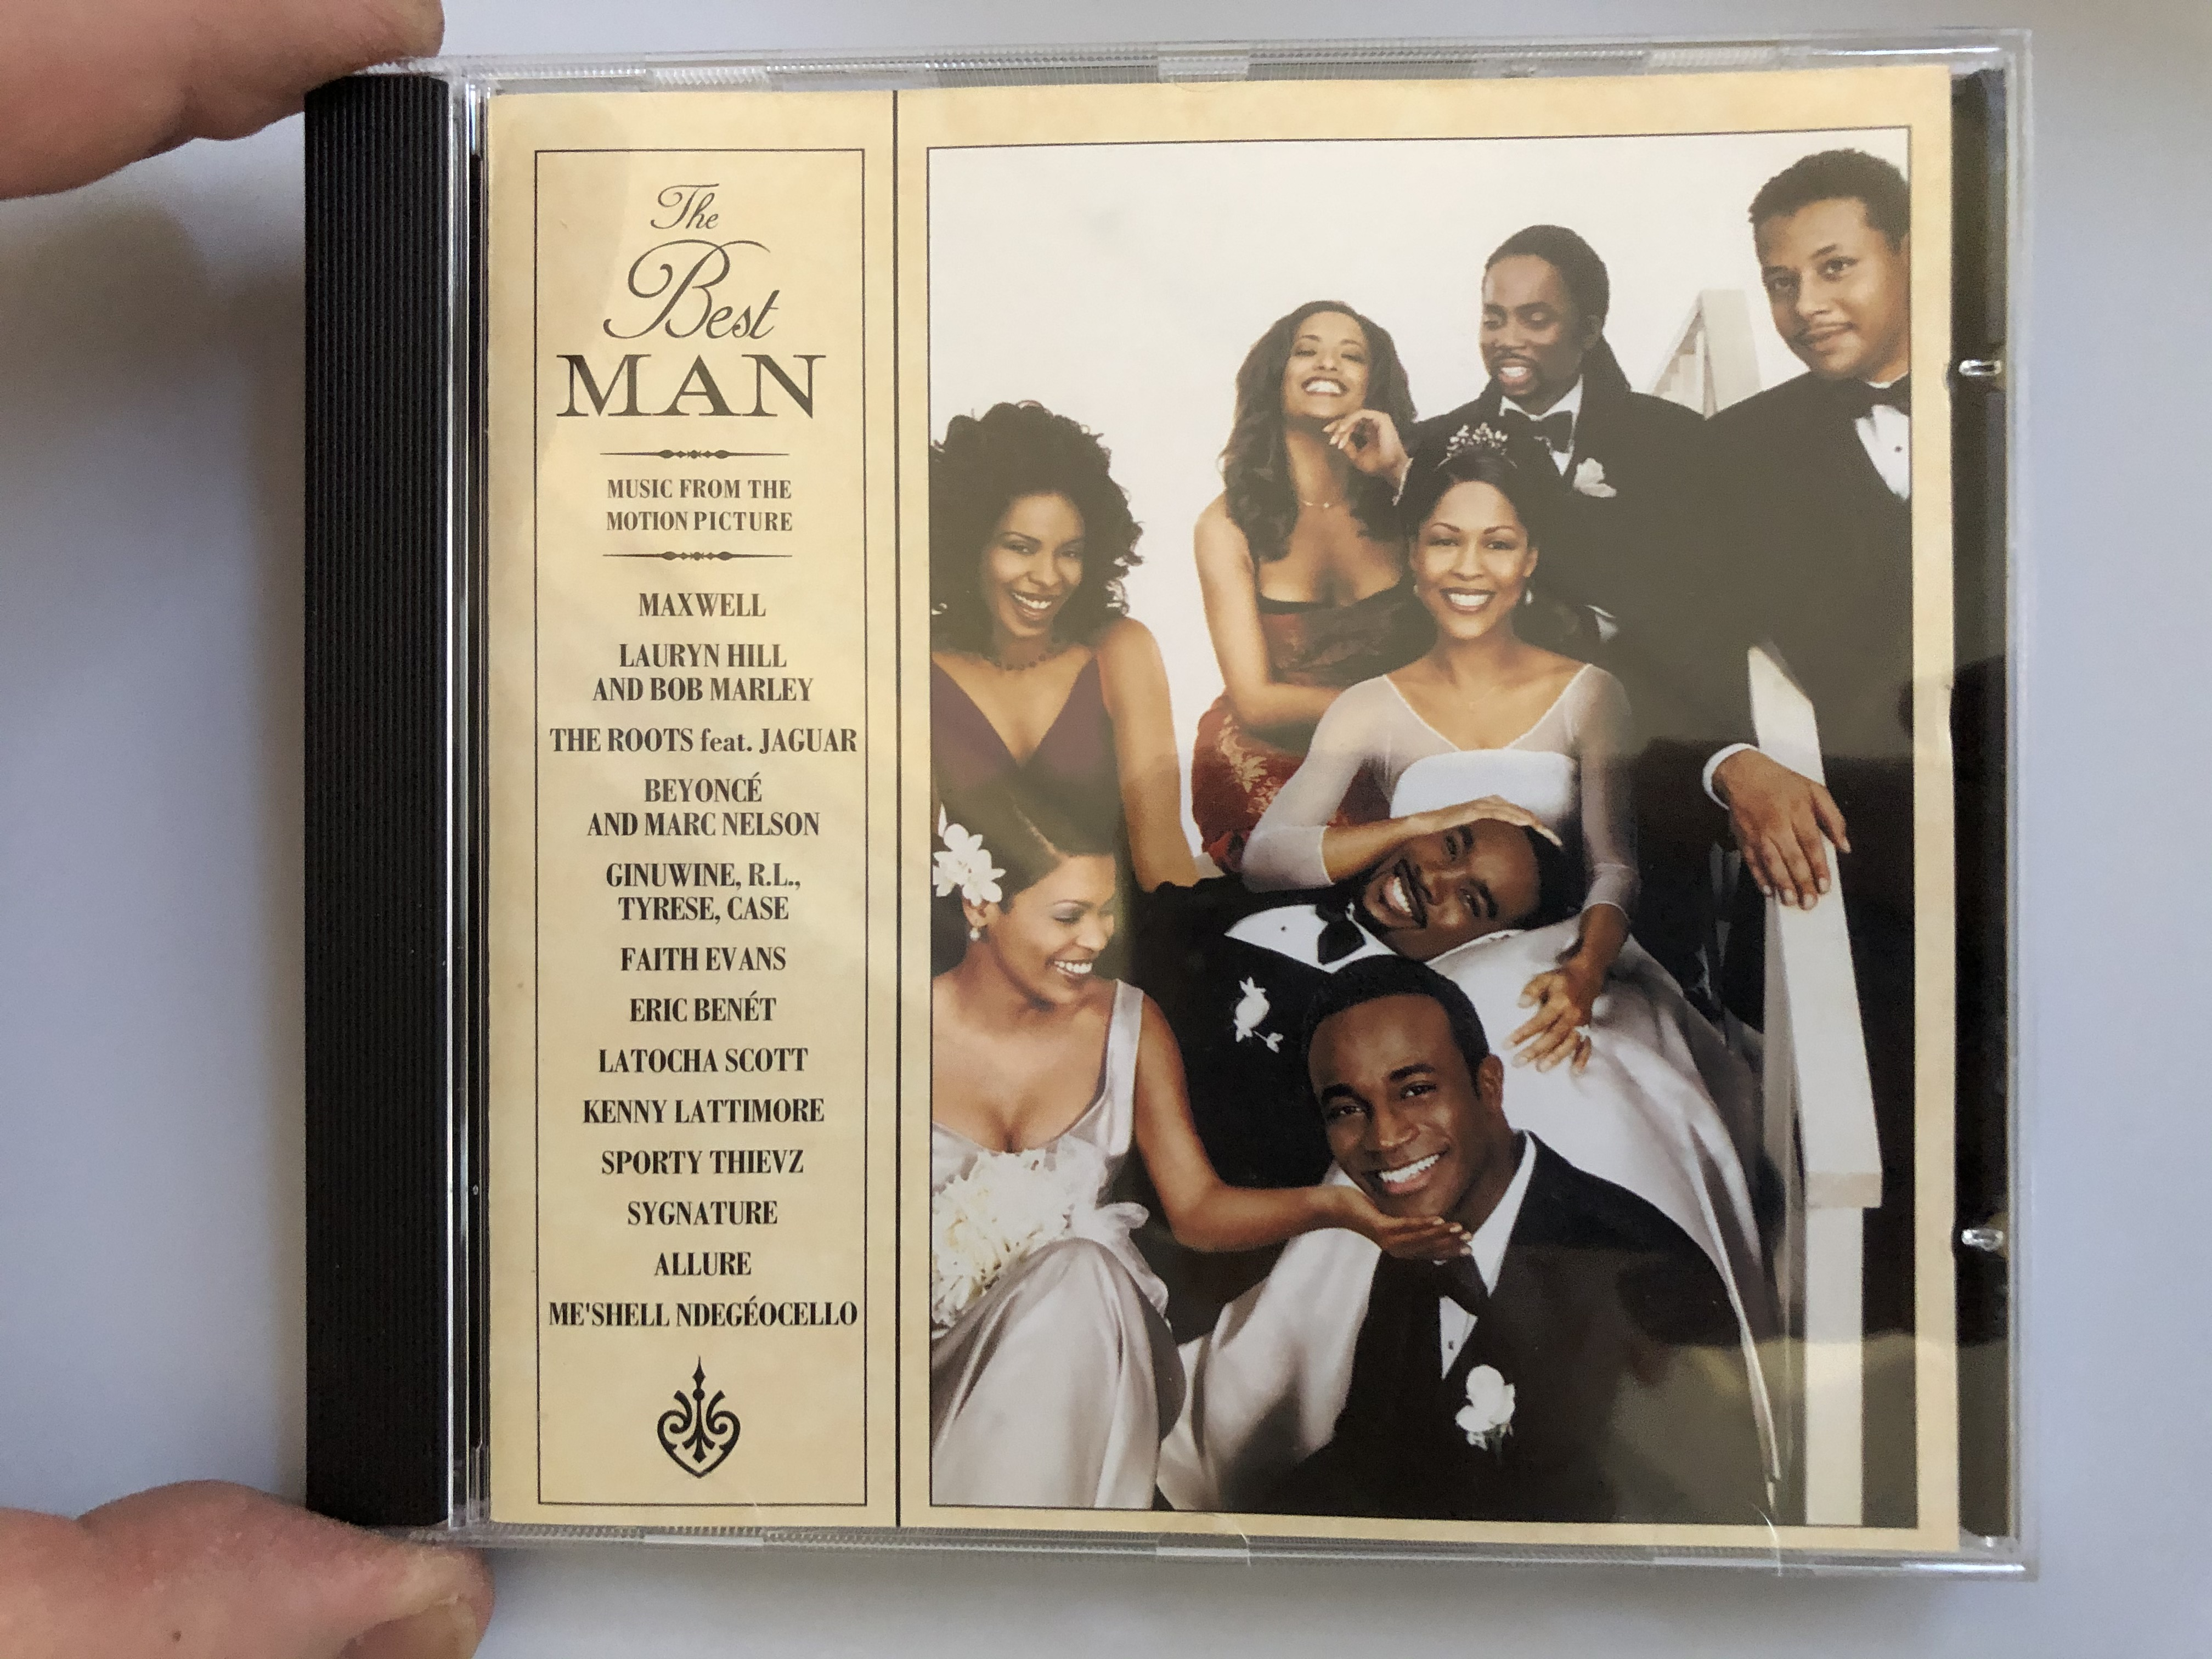 the-best-man-music-from-the-motion-picture-maxwell-lauryn-hill-and-bob-marley-the-roots-featuring-jaguar-wright-beyonc-and-marc-nelson-ginuwine-rl-tyrese-case-faith-evans-eric-ben-t-1-.jpg